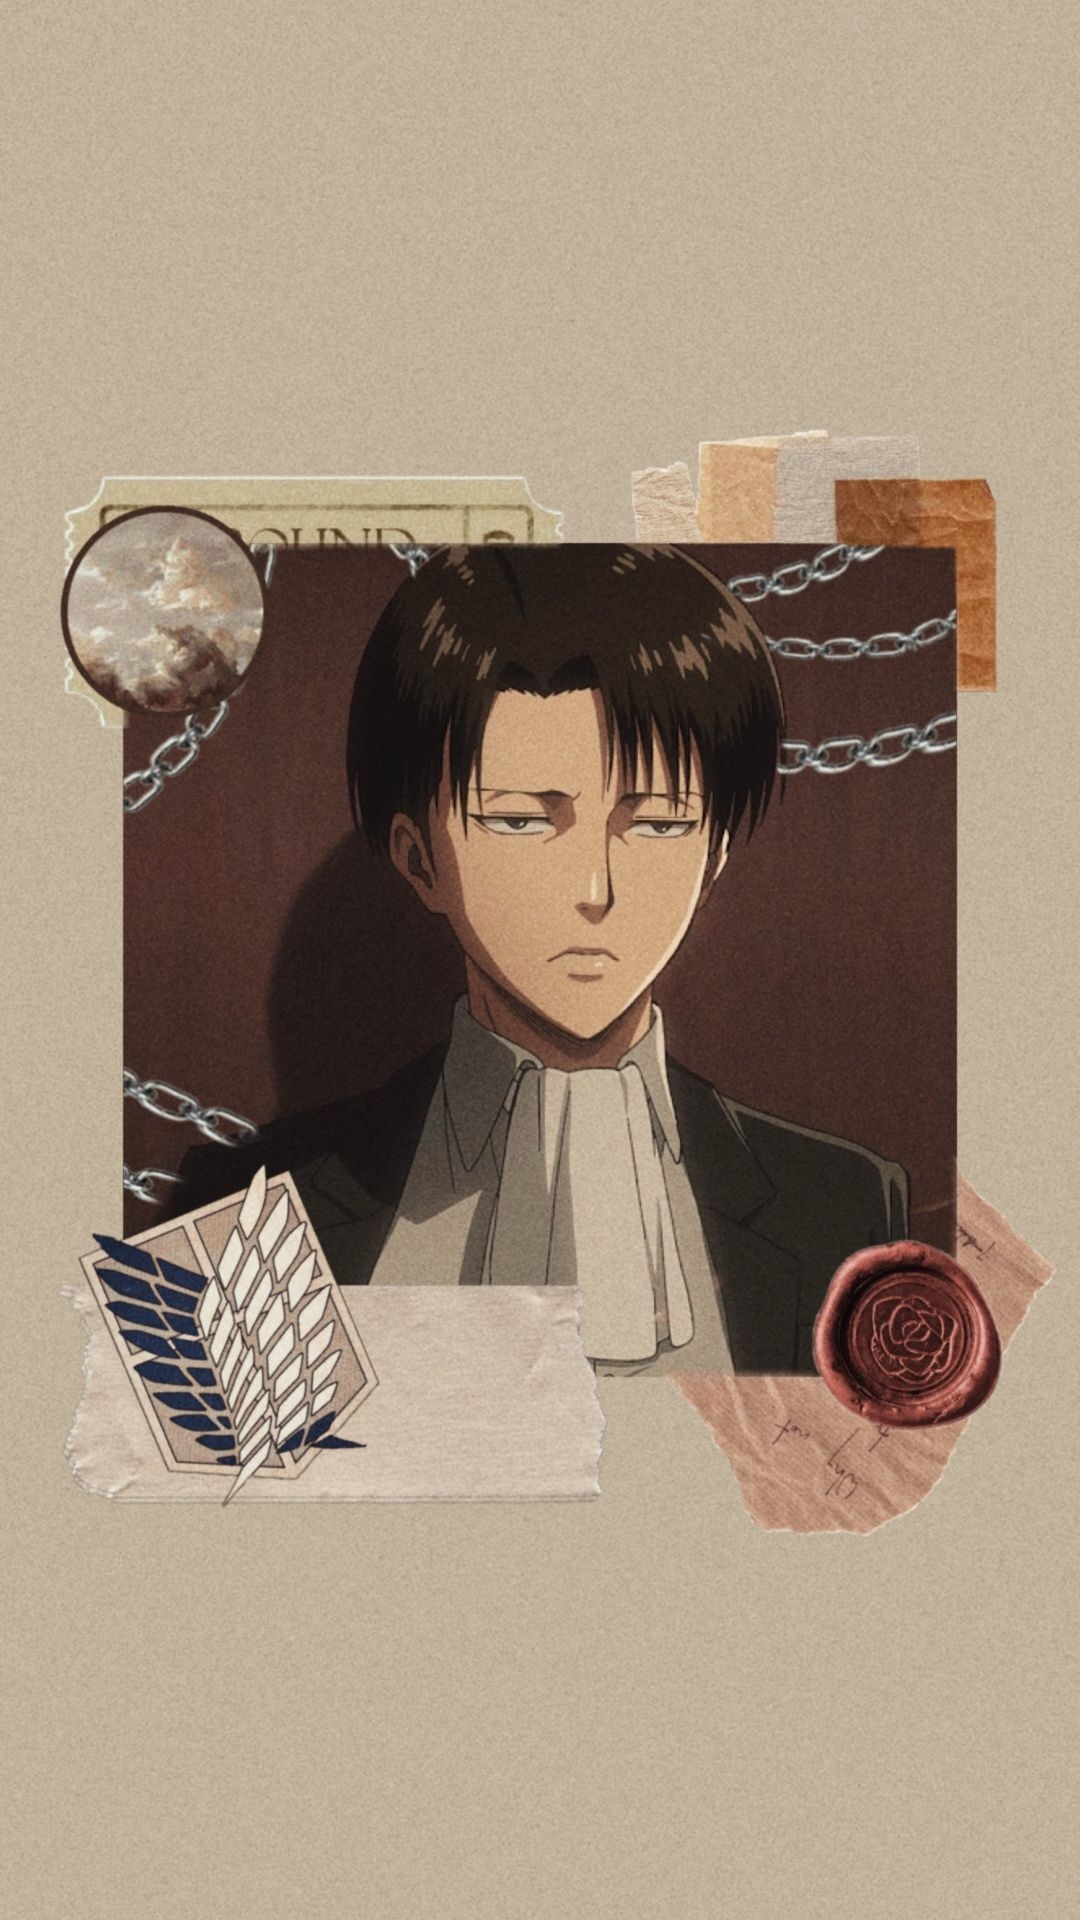 Levi Wallpaper Stan Penomeco Cute Anime Wallpaper Anime Wallpaper Anime Wallpaper Iphone